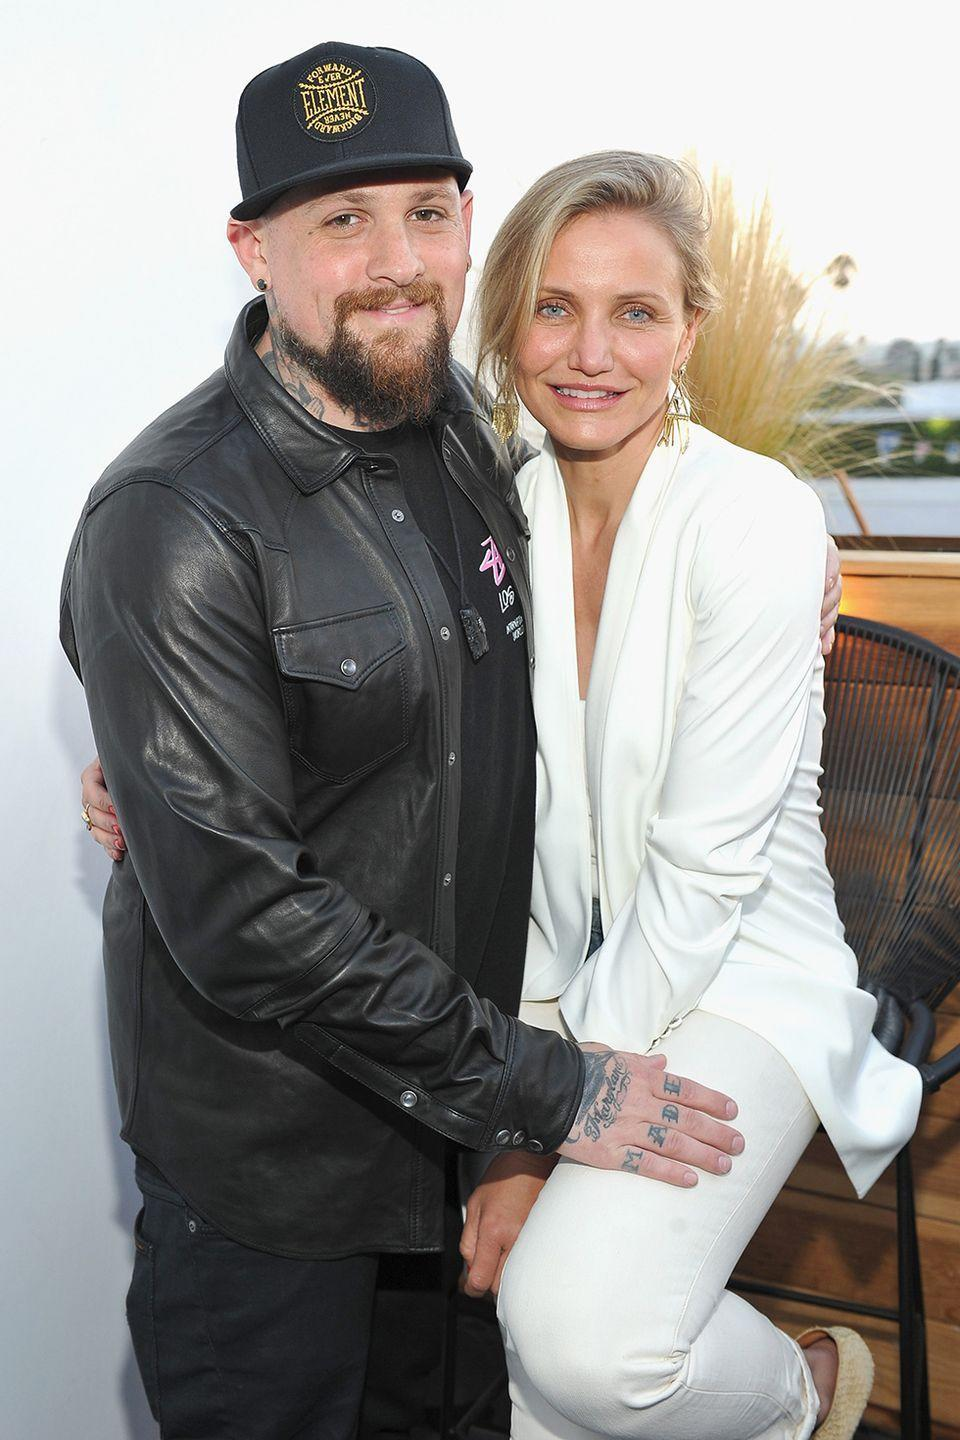 "<p>After dating for seven months, Cameron, 41, and Benji got engaged around Christmas 2014 and were married the following January at their home in LA. ""…I have a husband who is…just my partner in life and in everything,"" she said in 2017 at a Goop health and wellness conference, according to  <a class=""link rapid-noclick-resp"" href=""https://www.usatoday.com/story/life/entertainthis/2017/06/11/cameron-diaz-reveals-why-she-waited-marry/102748686/"" rel=""nofollow noopener"" target=""_blank"" data-ylk=""slk:USA Today.""><em>USA Today</em>.</a> Awww.</p>"